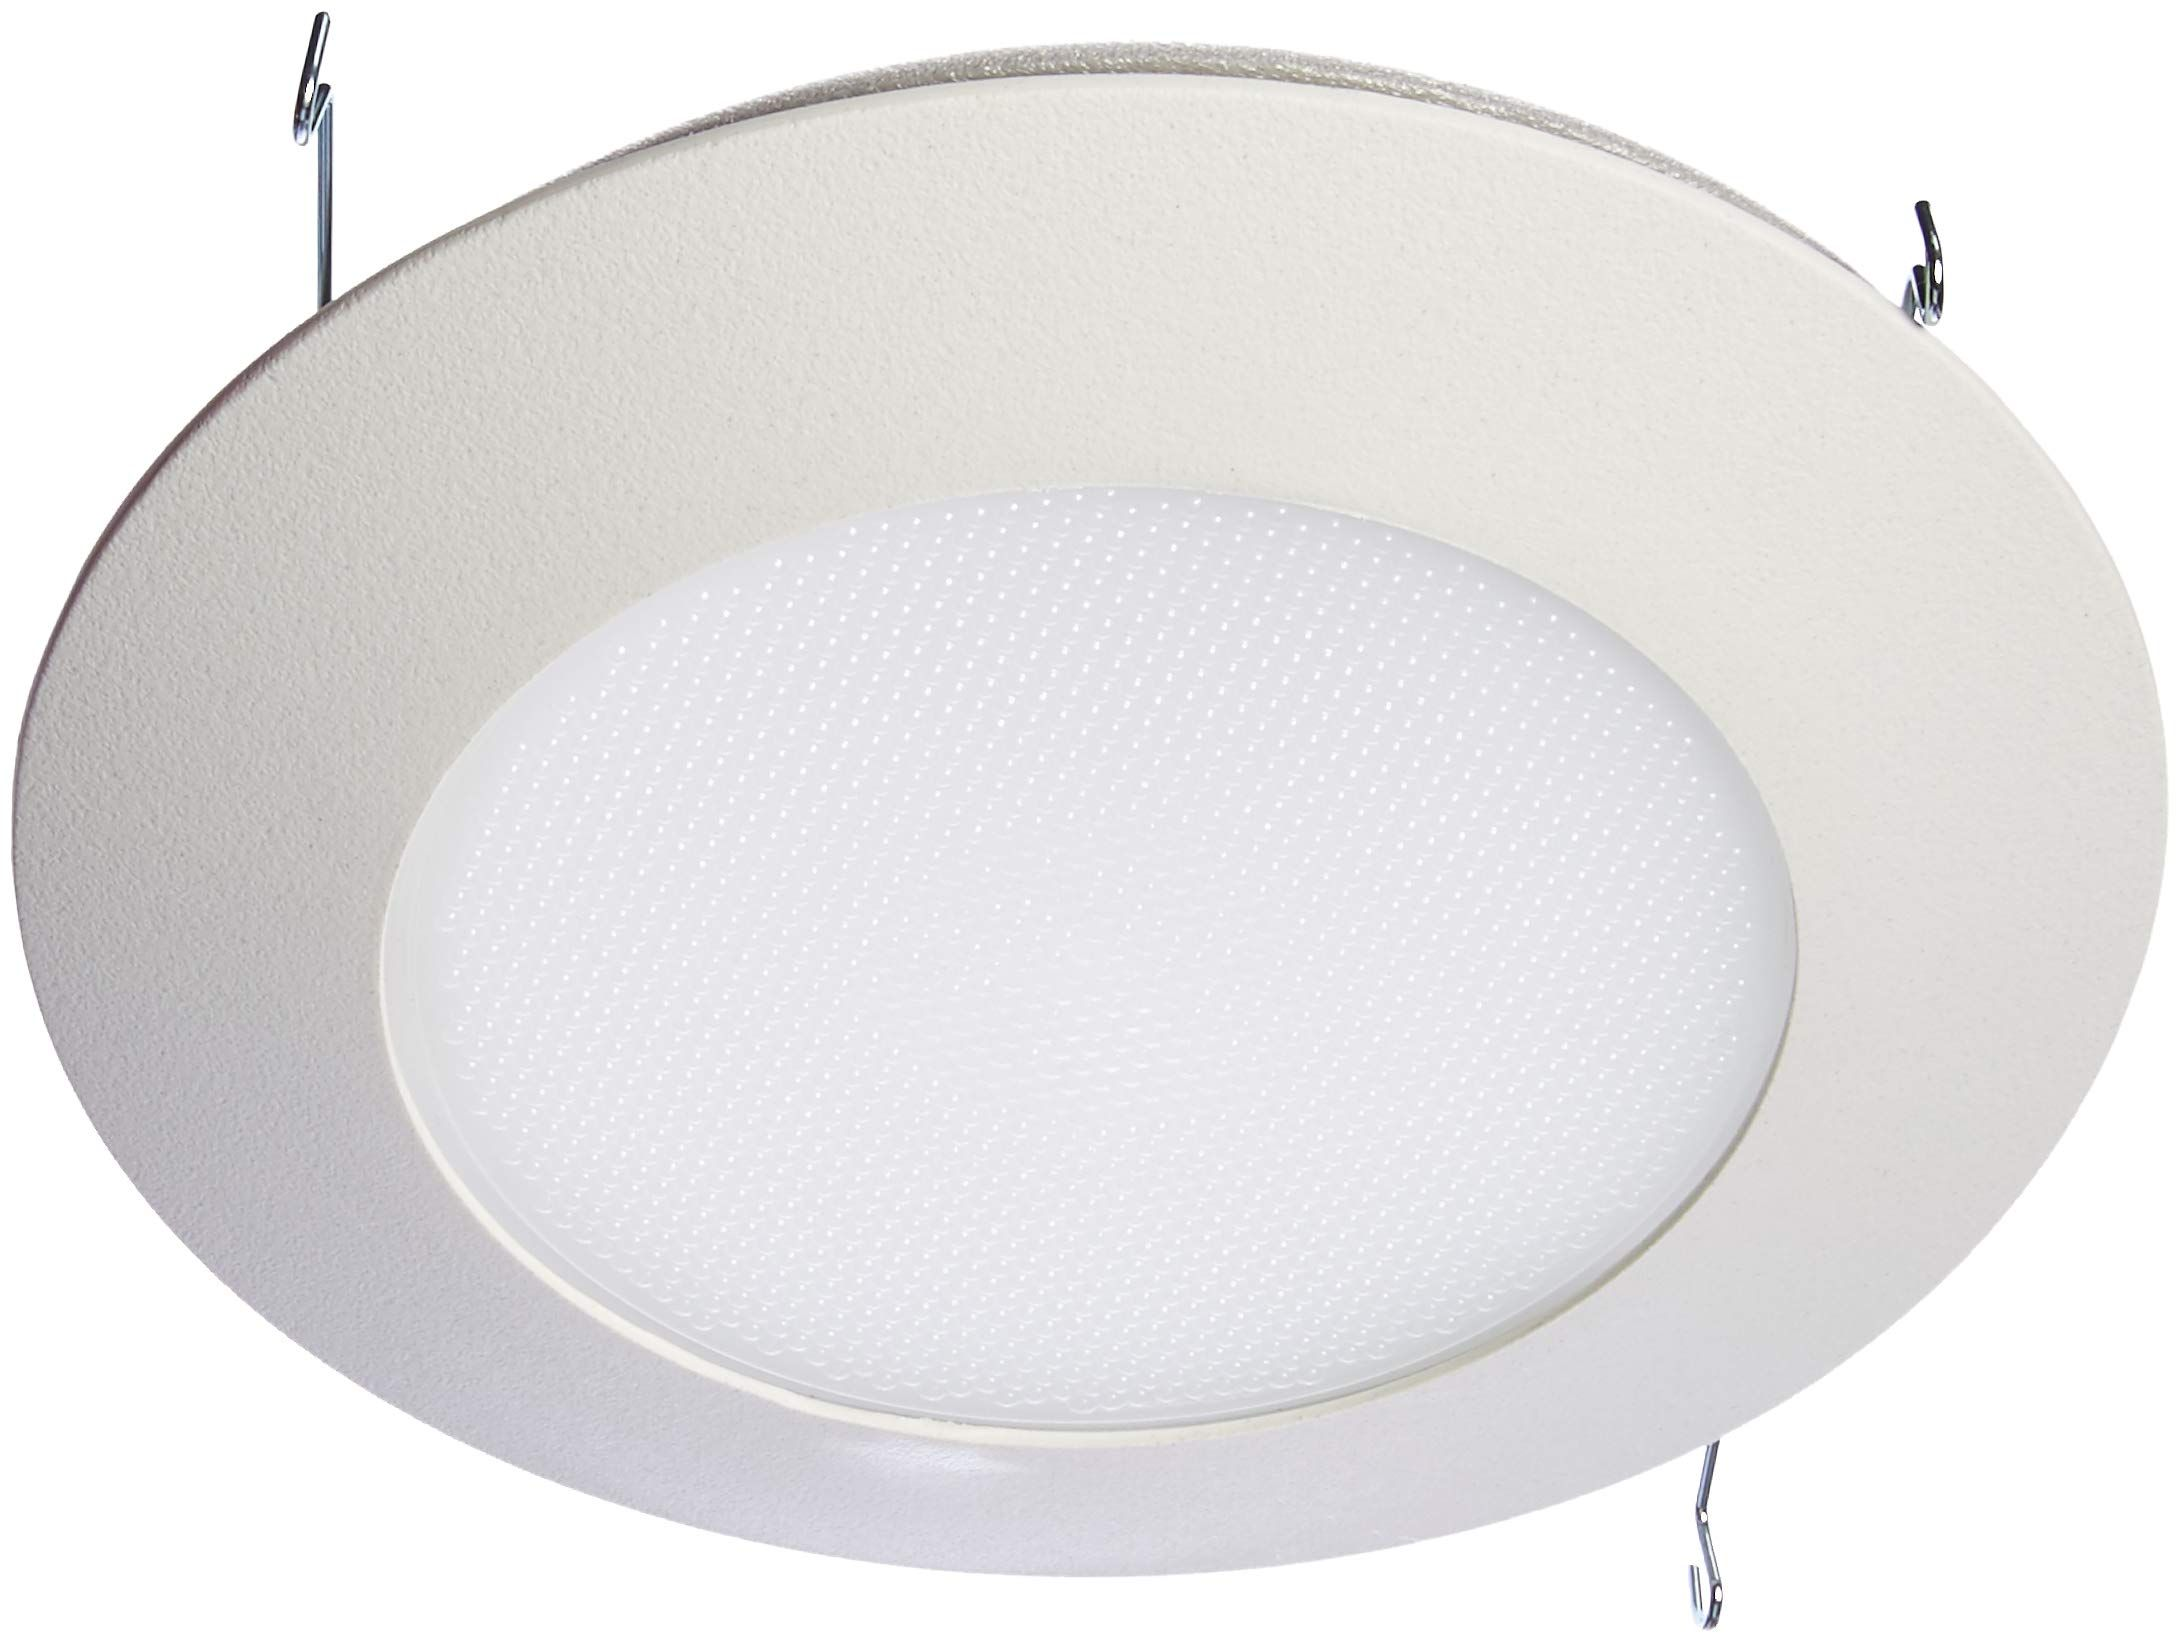 Halo Recessed 70ps 6 Inch Trim Wet Location And Air Tite Listed Trim With Frosted Albali Recessed Lighting Living Room Recessed Lighting Recessed Lighting Trim